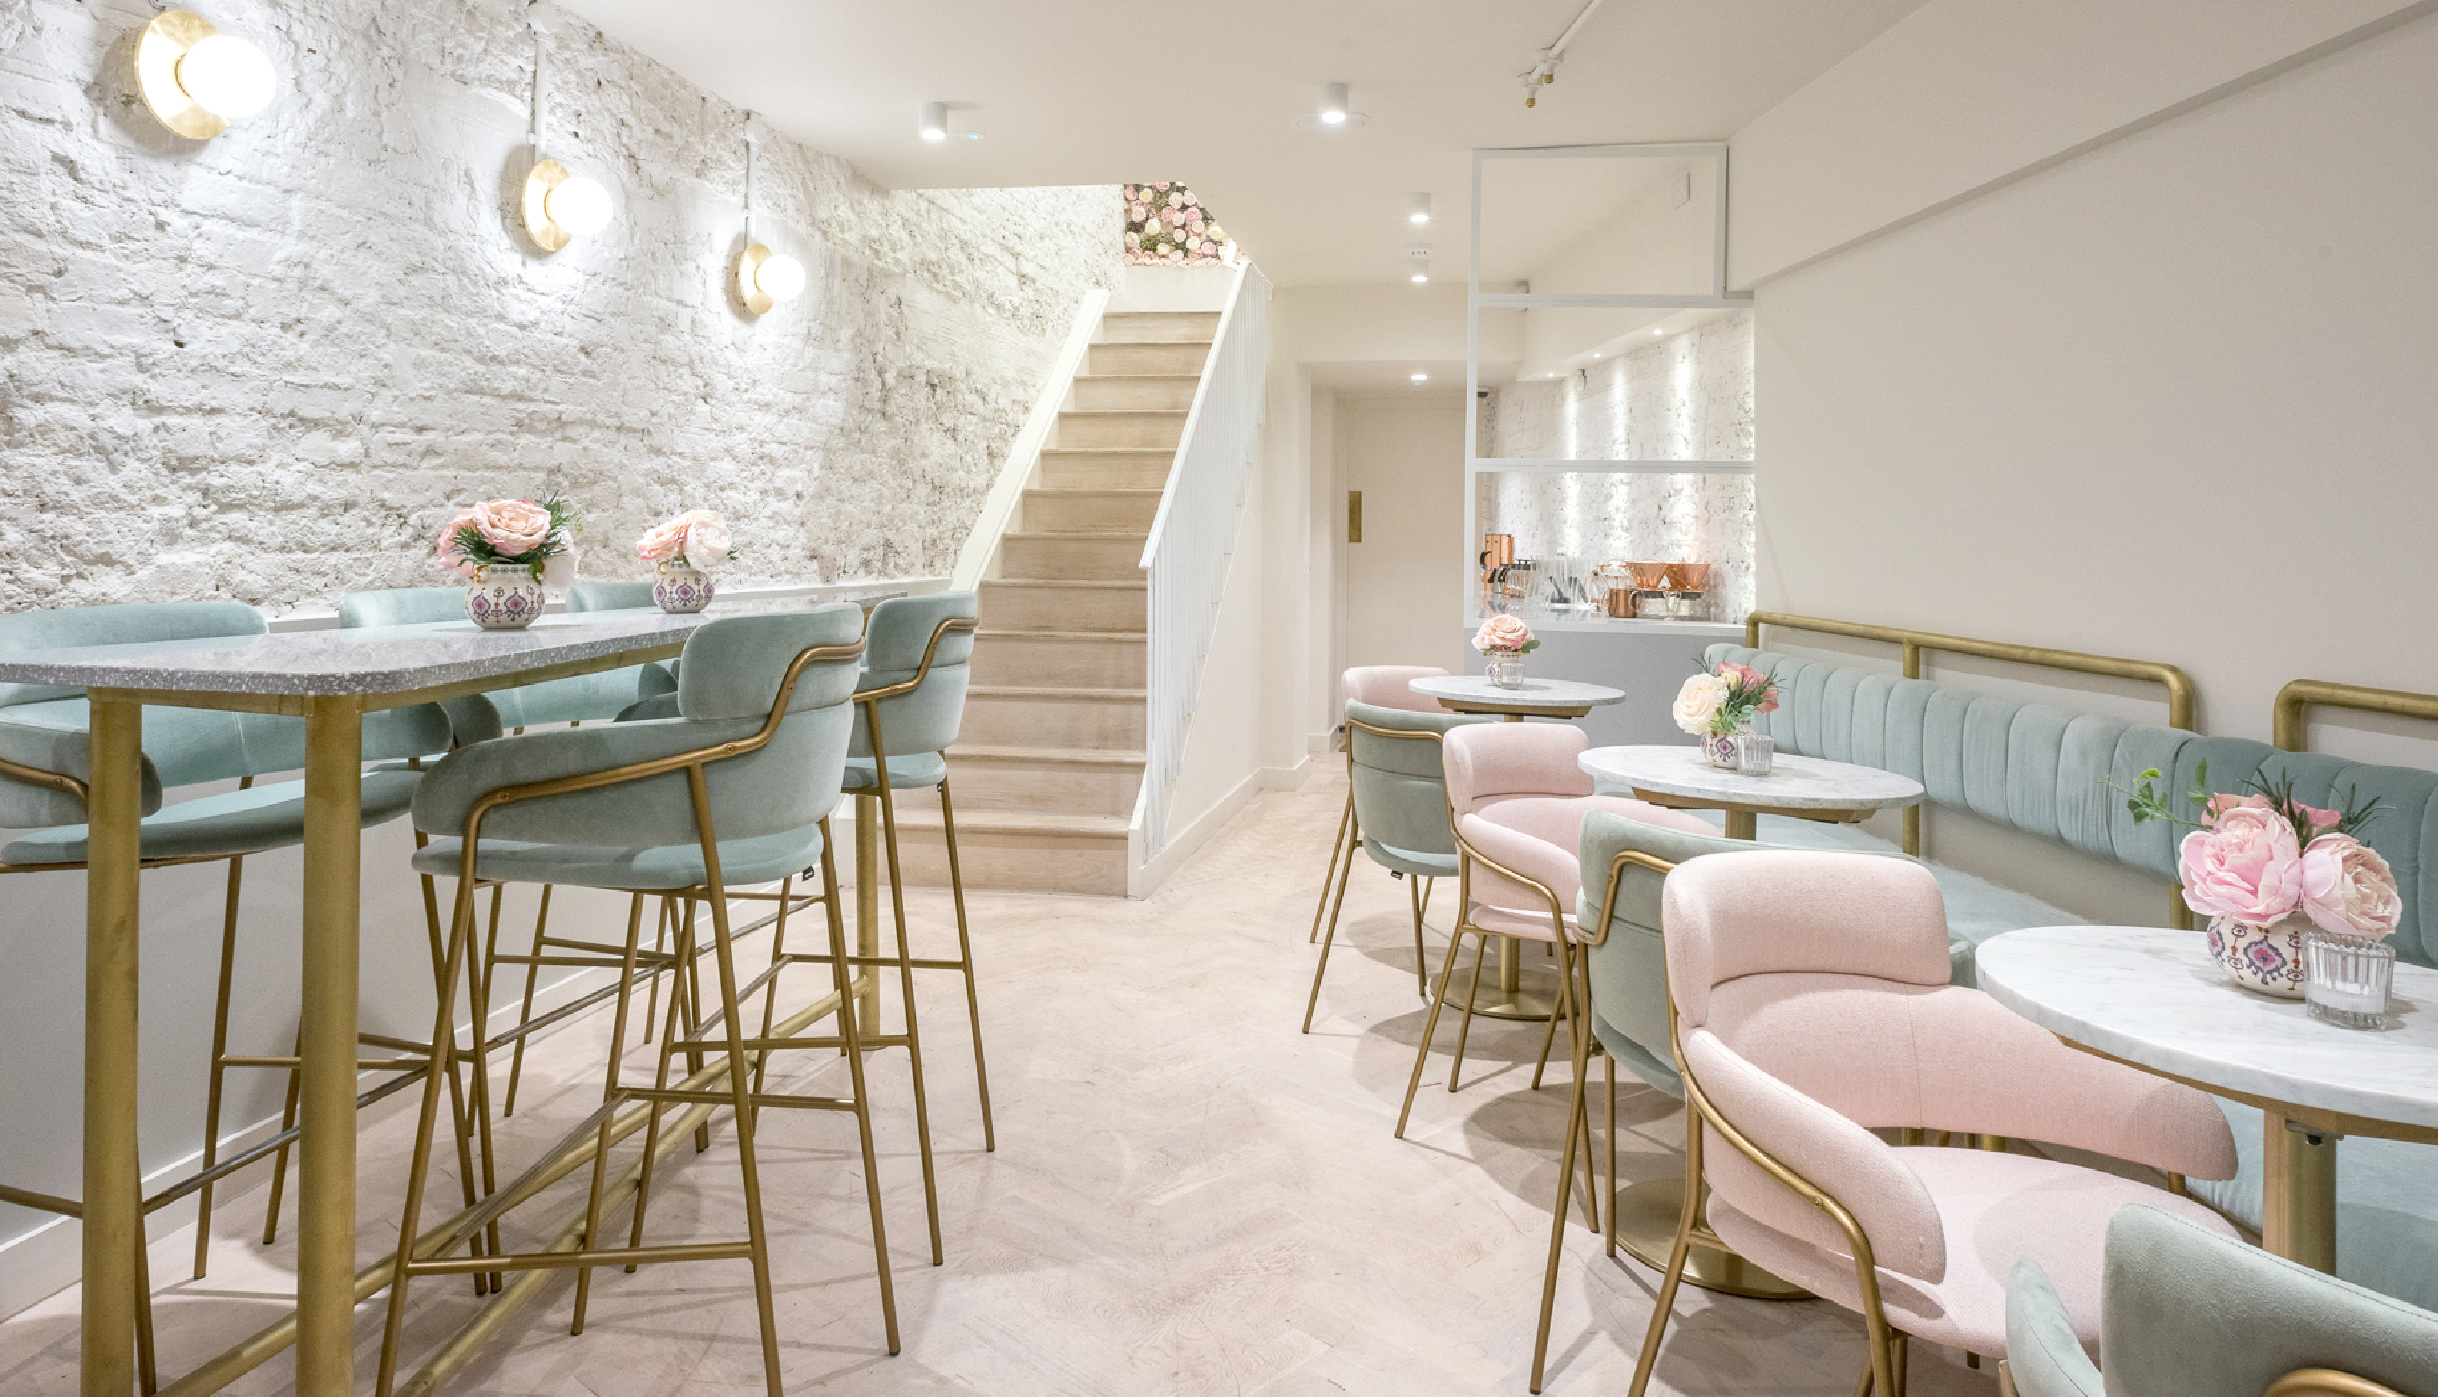 Interior design by Holland Harvey architects of Elan Café based on Park Lane, Mayfair